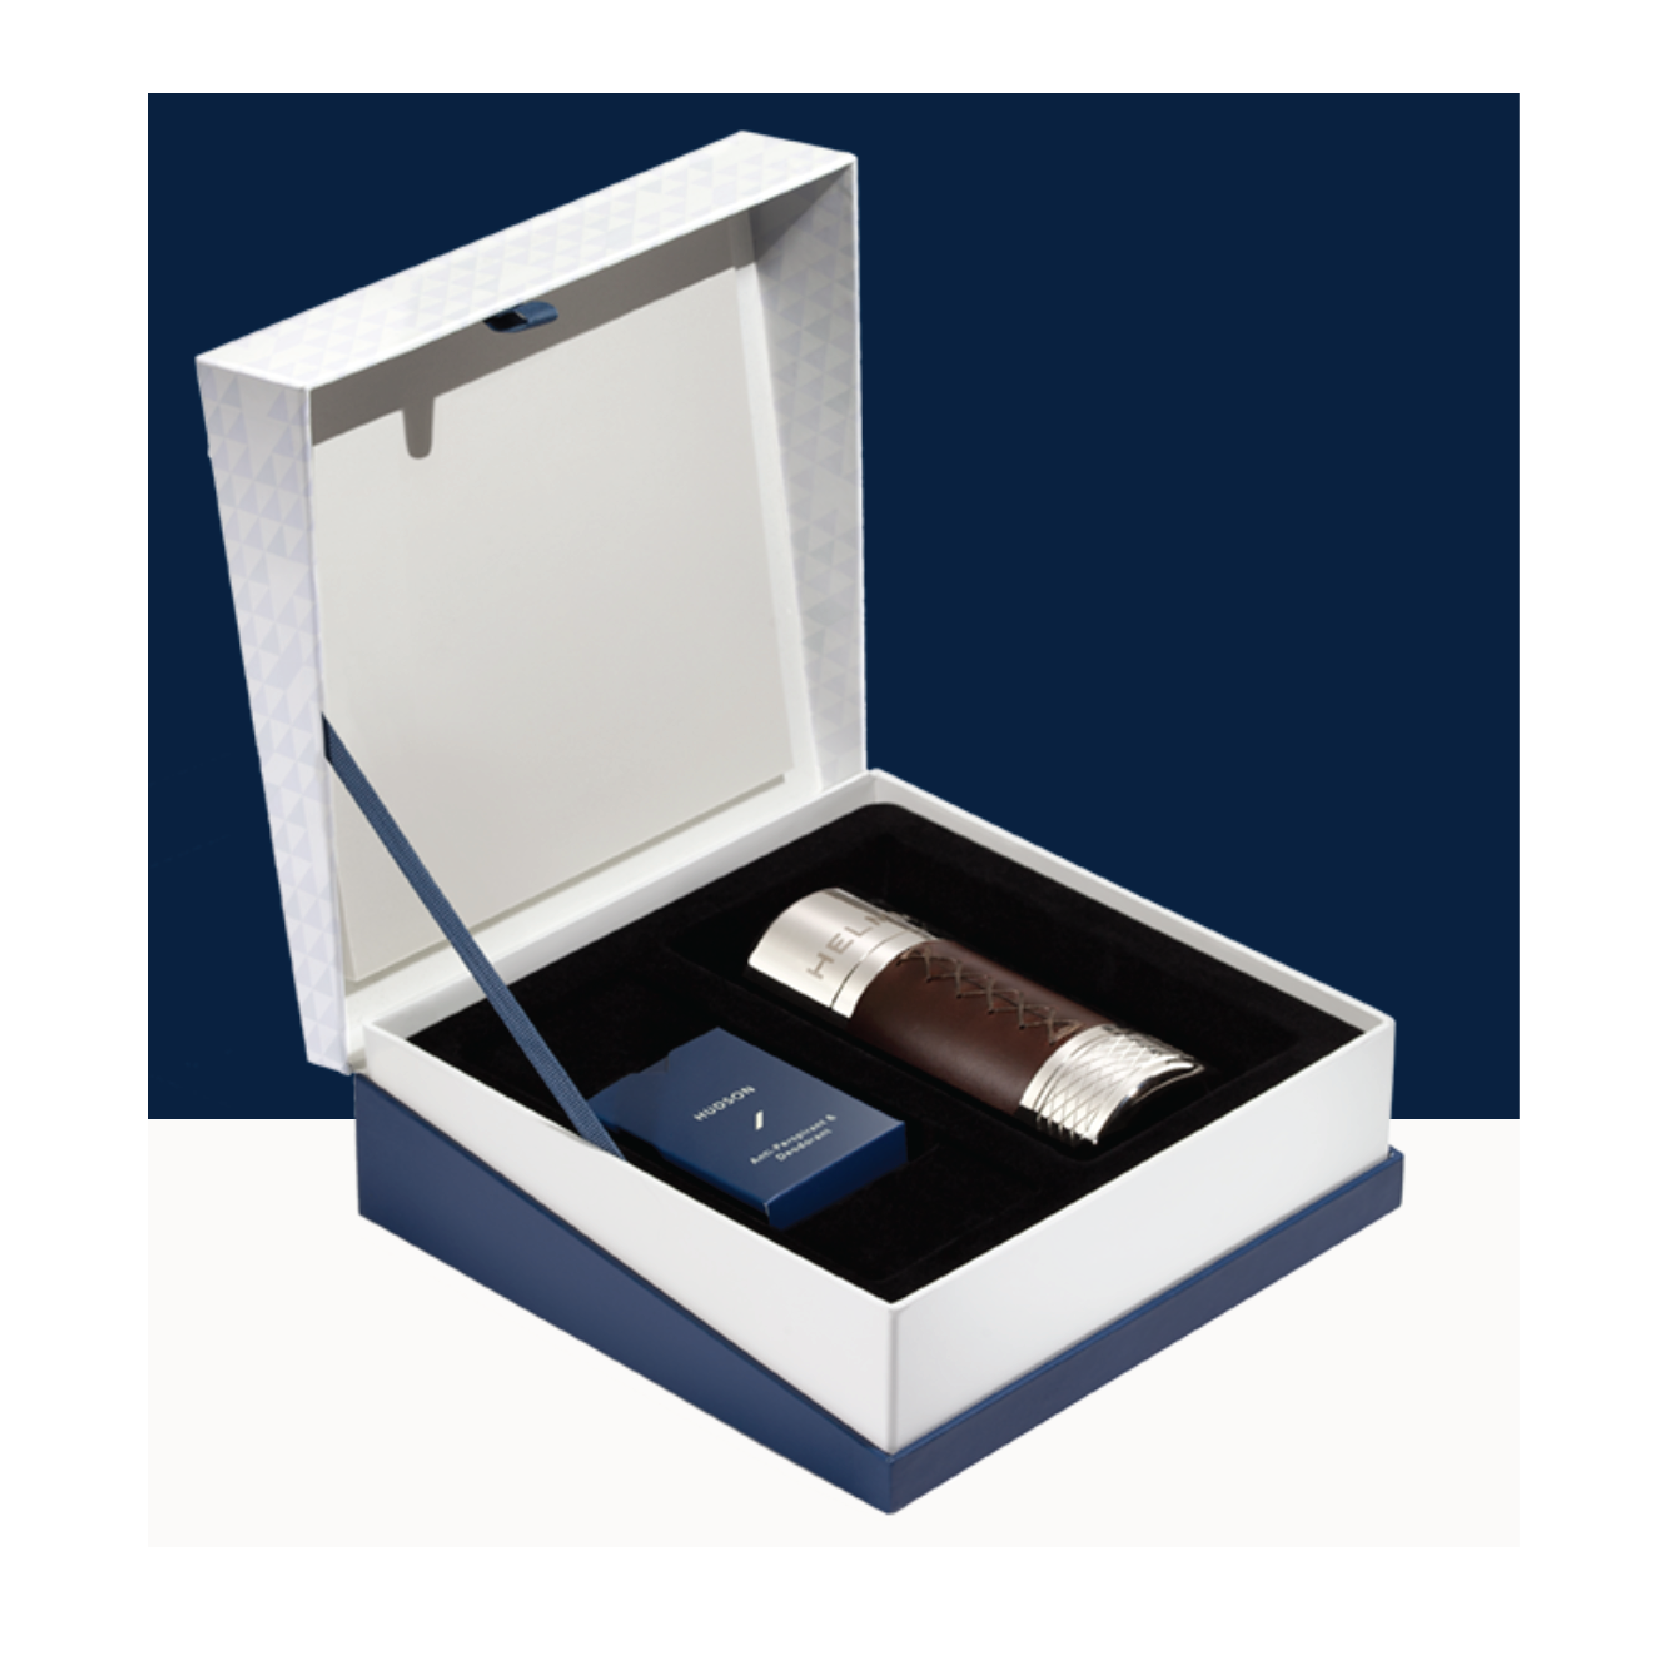 Helmm Gift Set - $48 at HelmmAnother great personalized gift, upgrade his deodorant to adult status.